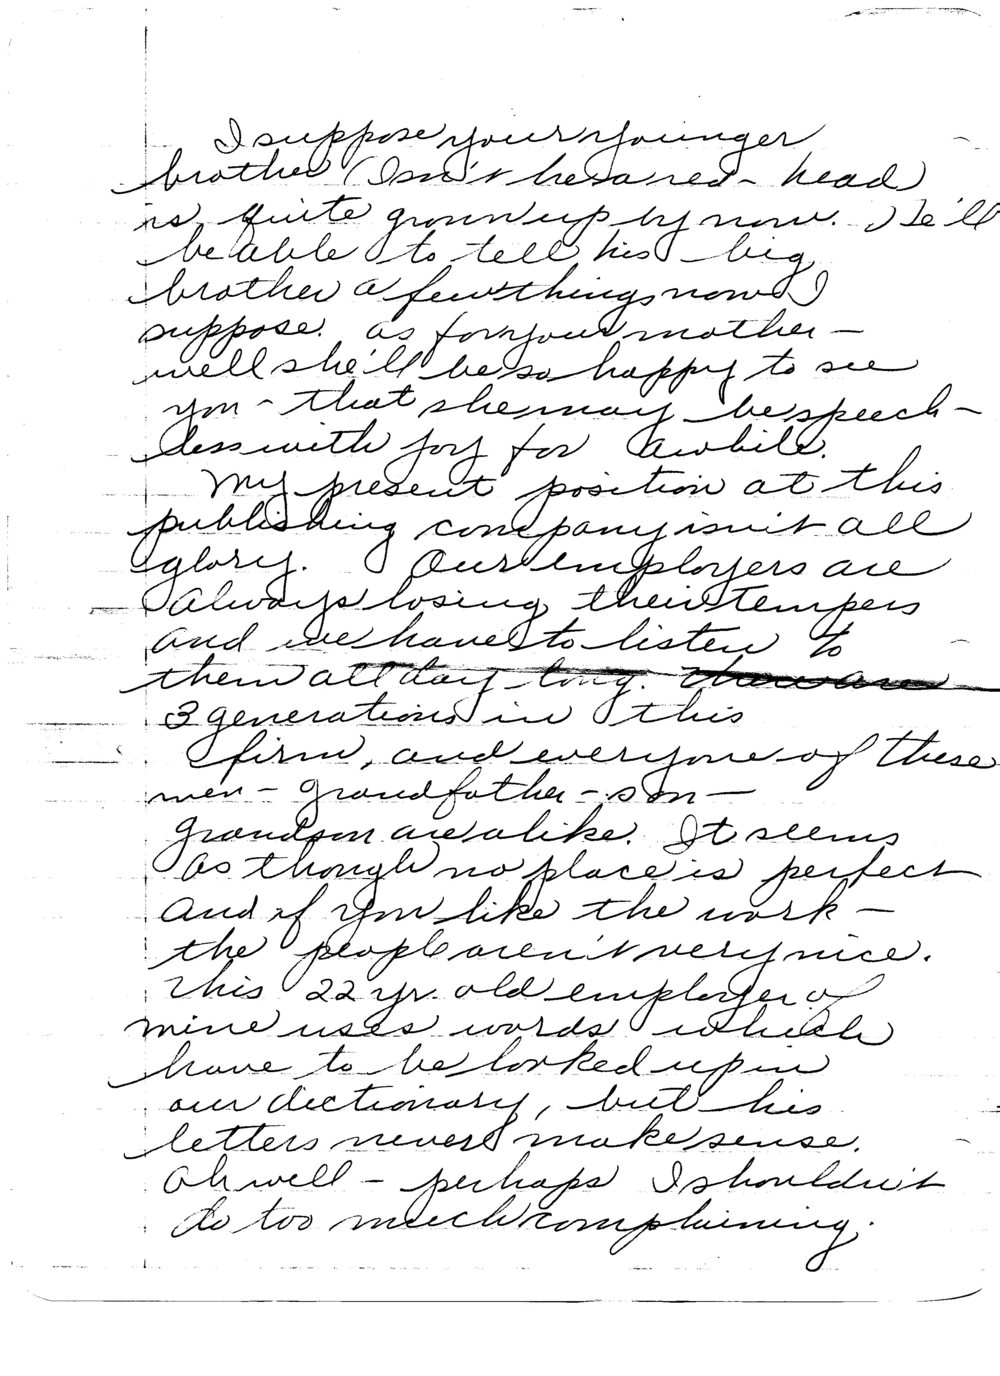 Ruth to Bob, Letter 5, December 20, 1945, page 4 of 6